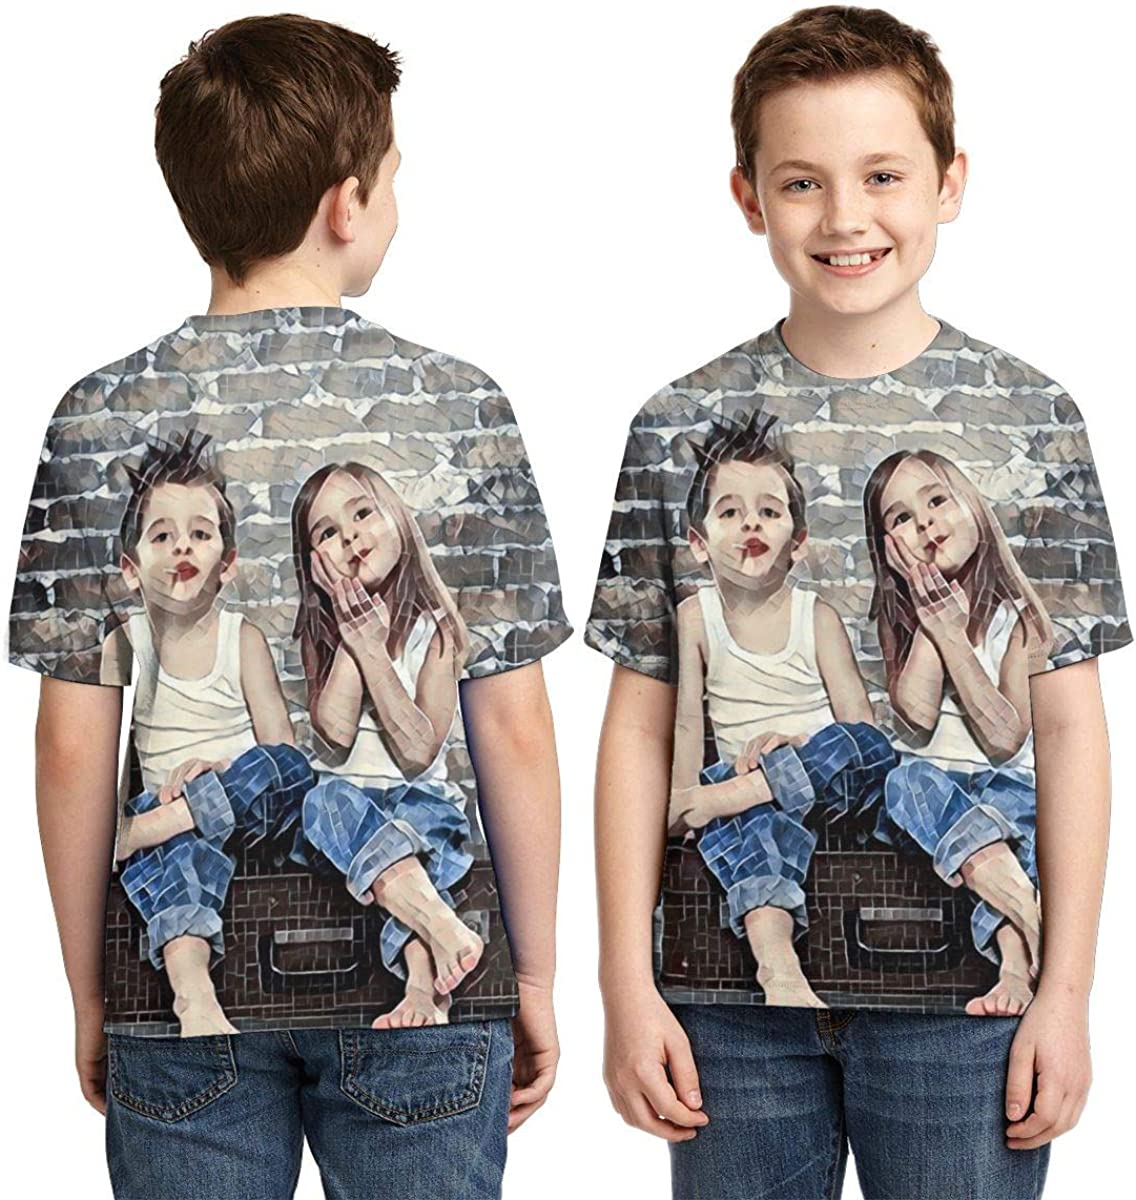 Friendship Gifts Custom T Shirts for Boys and Girls Design Your Own Front Photo Kids Tee,Birthday Gifts for Kids